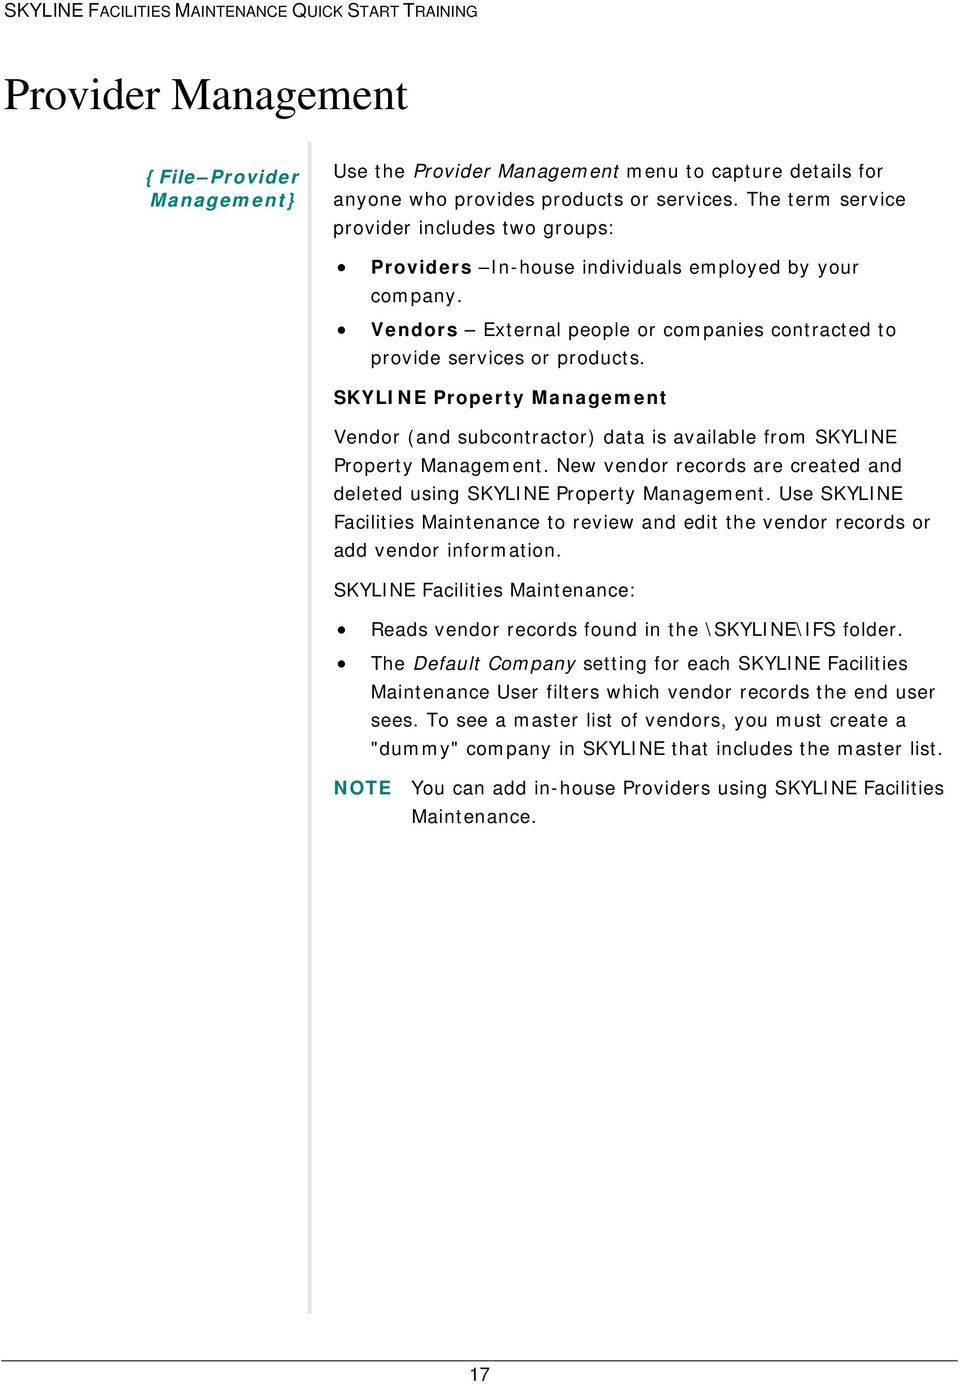 SKYLINE Property Management Vendor (and subcontractor) data is available from SKYLINE Property Management. New vendor records are created and deleted using SKYLINE Property Management.